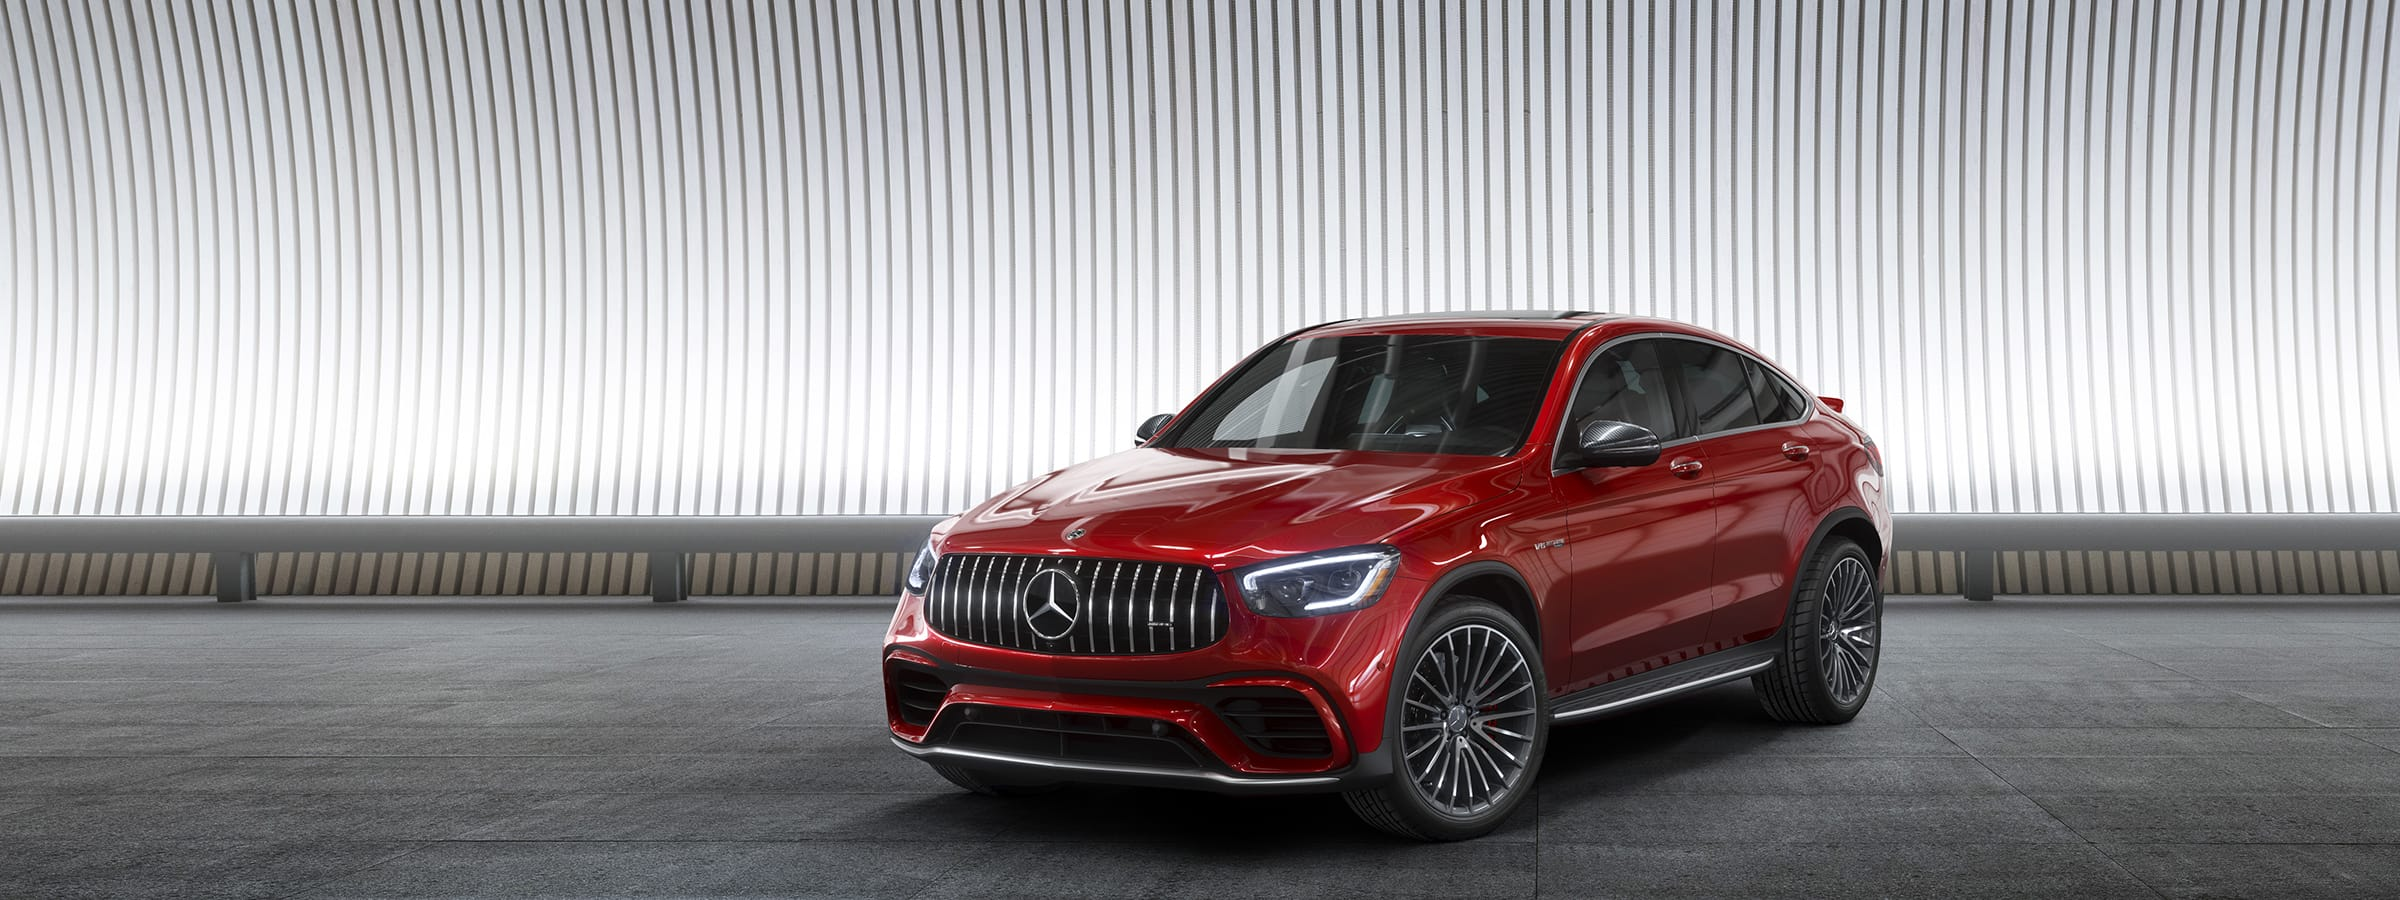 Amg Glc Coupe Mercedes Benz